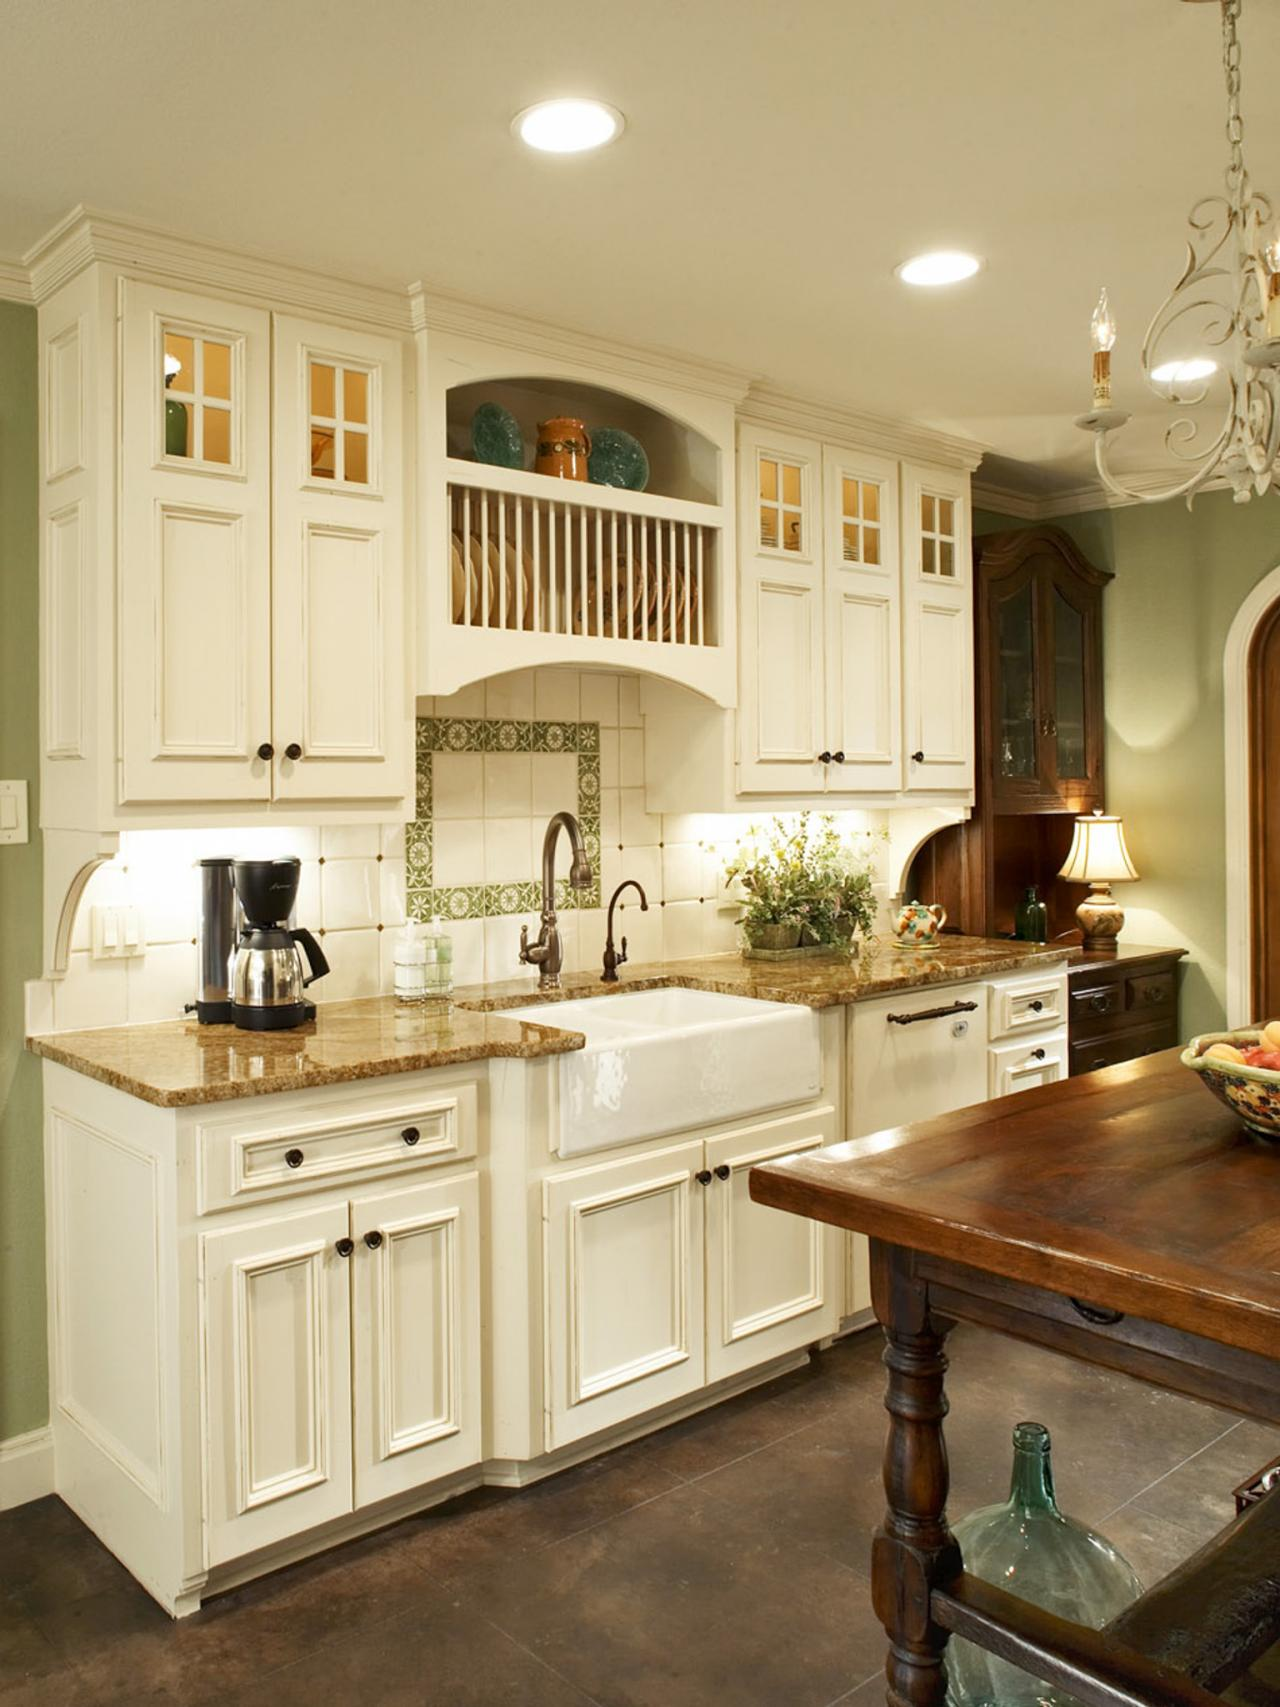 French Country Kitchen Inspiration French Country Kitchen Makeover  Bonnie Pressley  Hgtv Decorating Design